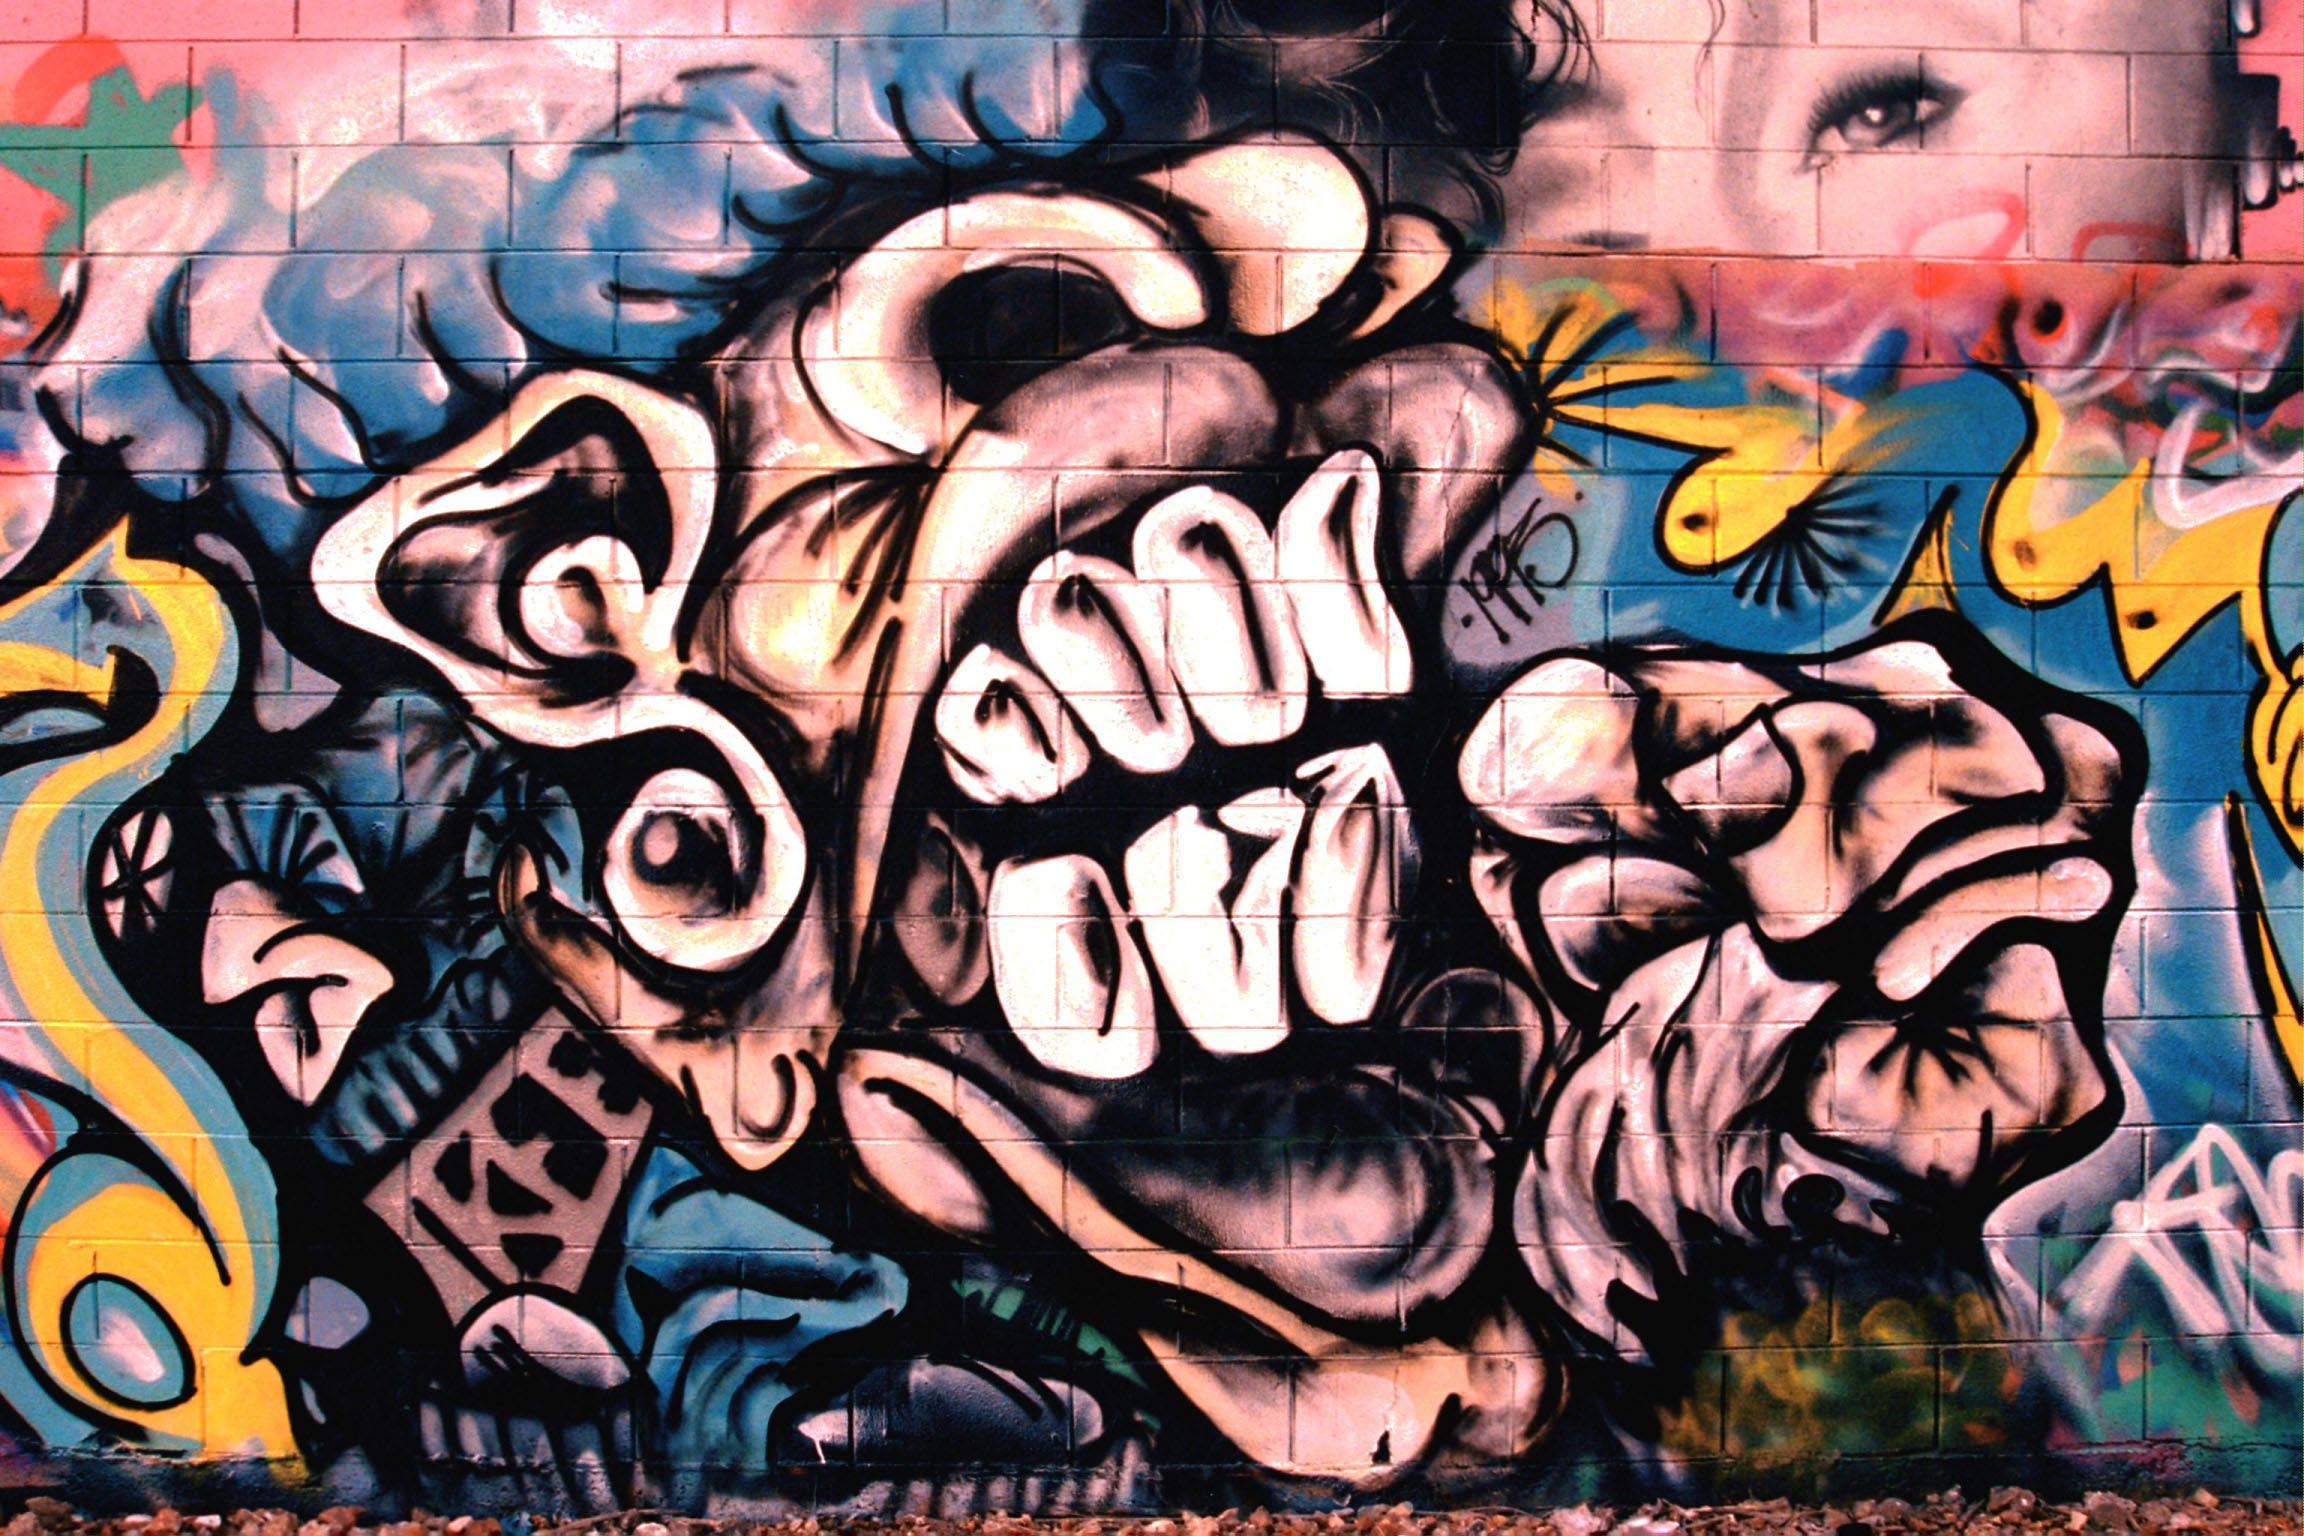 Graffiti hd desktop wallpapers for widescreen wallpapers graffiti hd desktop wallpapers for widescreen voltagebd Image collections